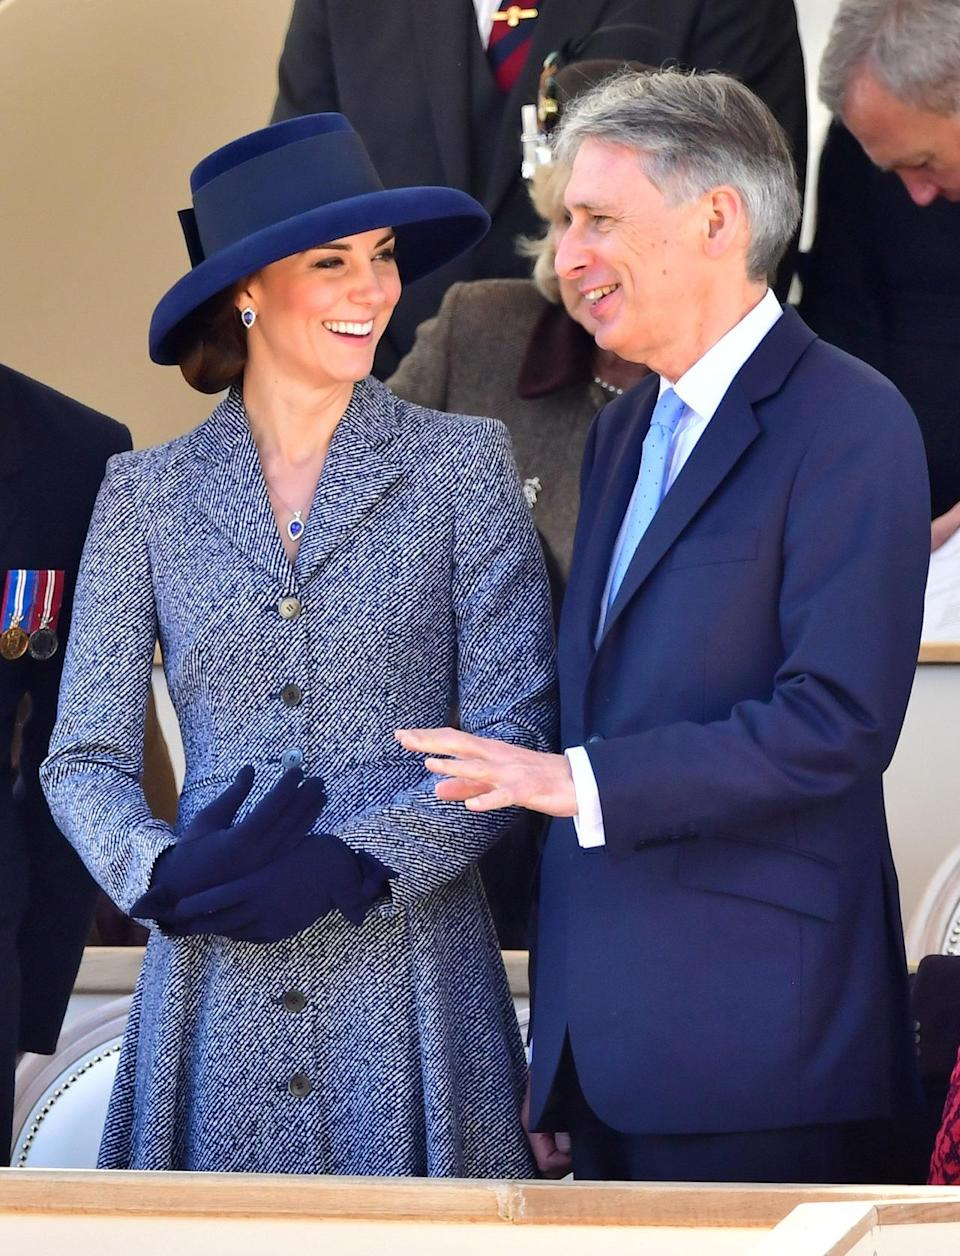 <p>The Duchess re-wore one of her favourite coat dresses for the unveiling of an Iraq and Afghanistan memorial in London. The light blue tweed design is by Michael Kors and was first worn by Kate back in 2014. On this occasion, she paired it with a navy wide-brimmed hat and matching wool gloves.</p><p><i>[Photo: PA]</i> </p>